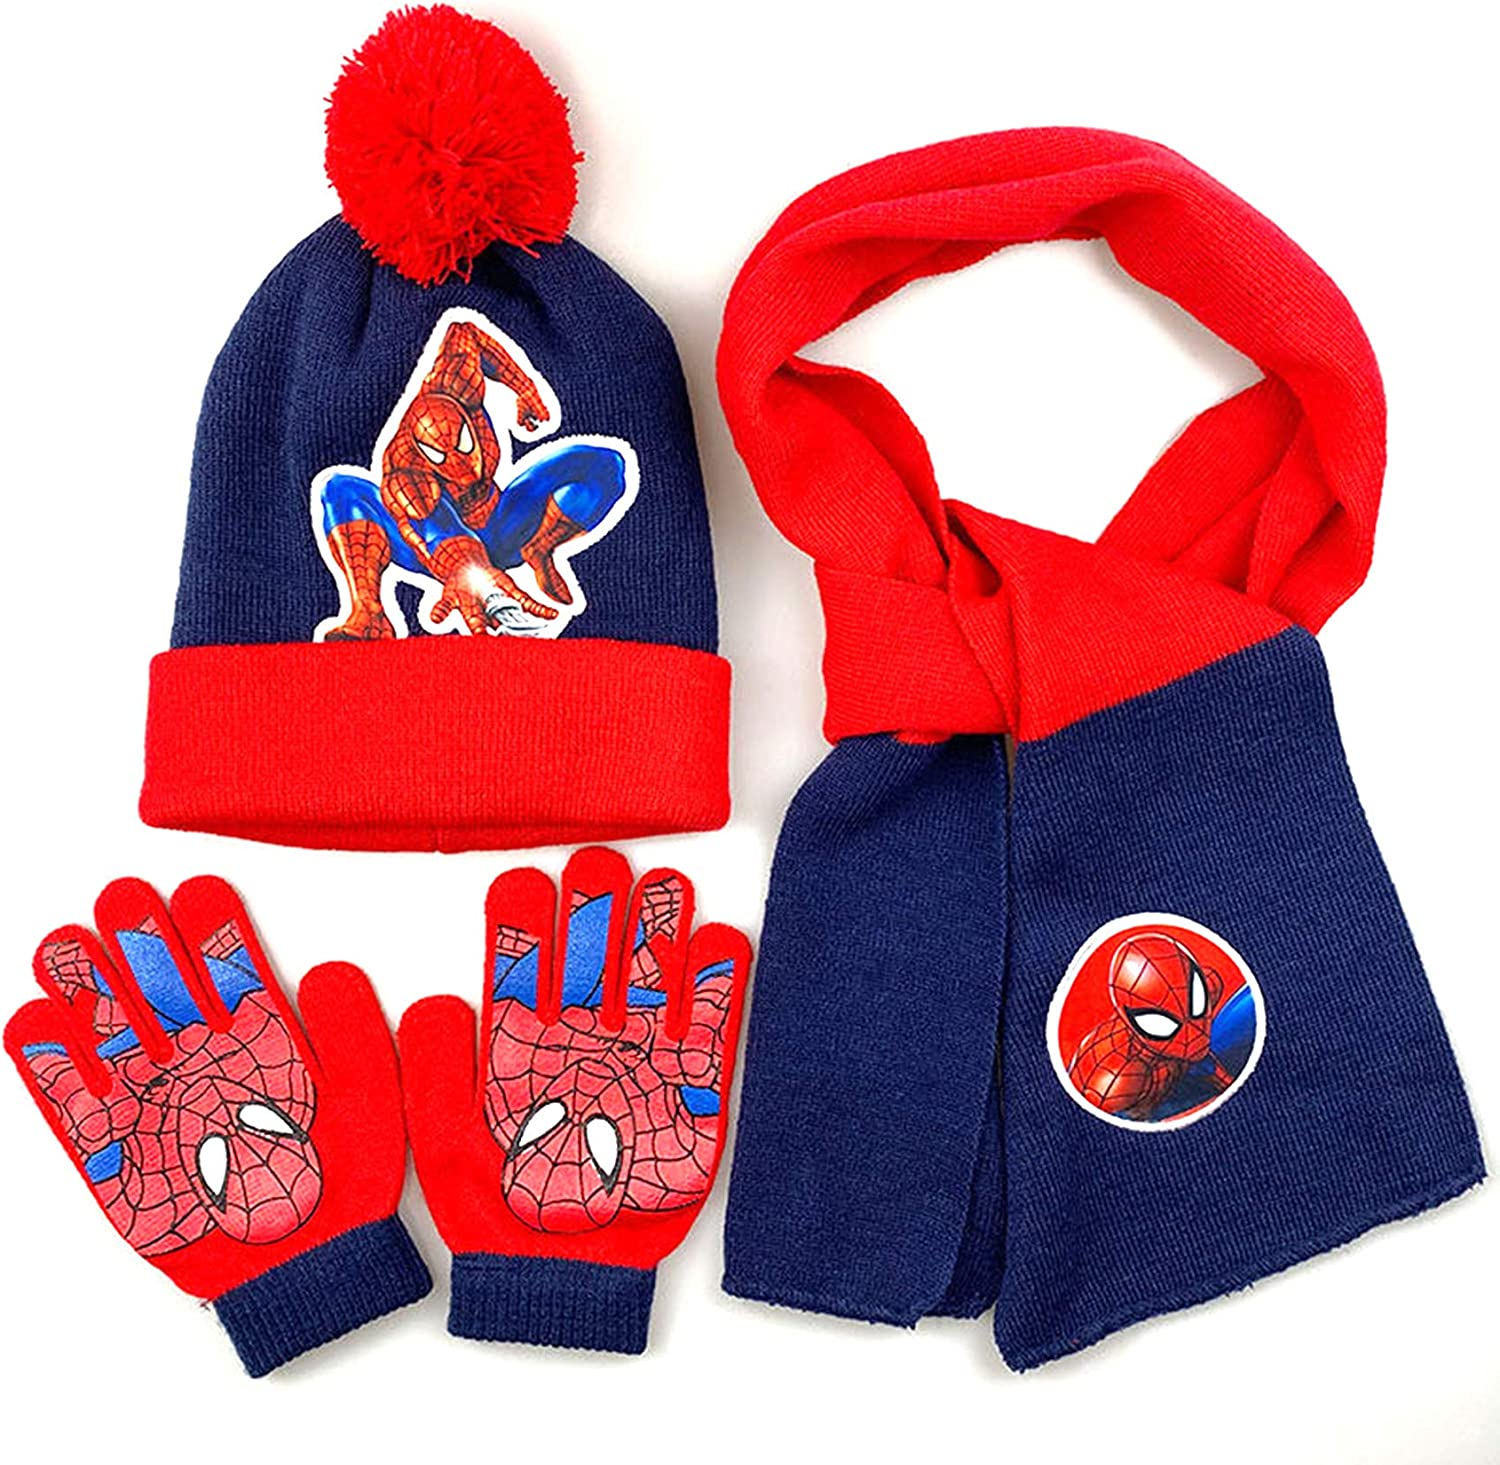 LINLIN Toddler Winter Knitted Hat Gloves Scarf 3 Piece Set 3~8 Years Boys Windproof Warm Cap Clothing Accessories Scarf Fashion Textile Wool Gloves,Blue